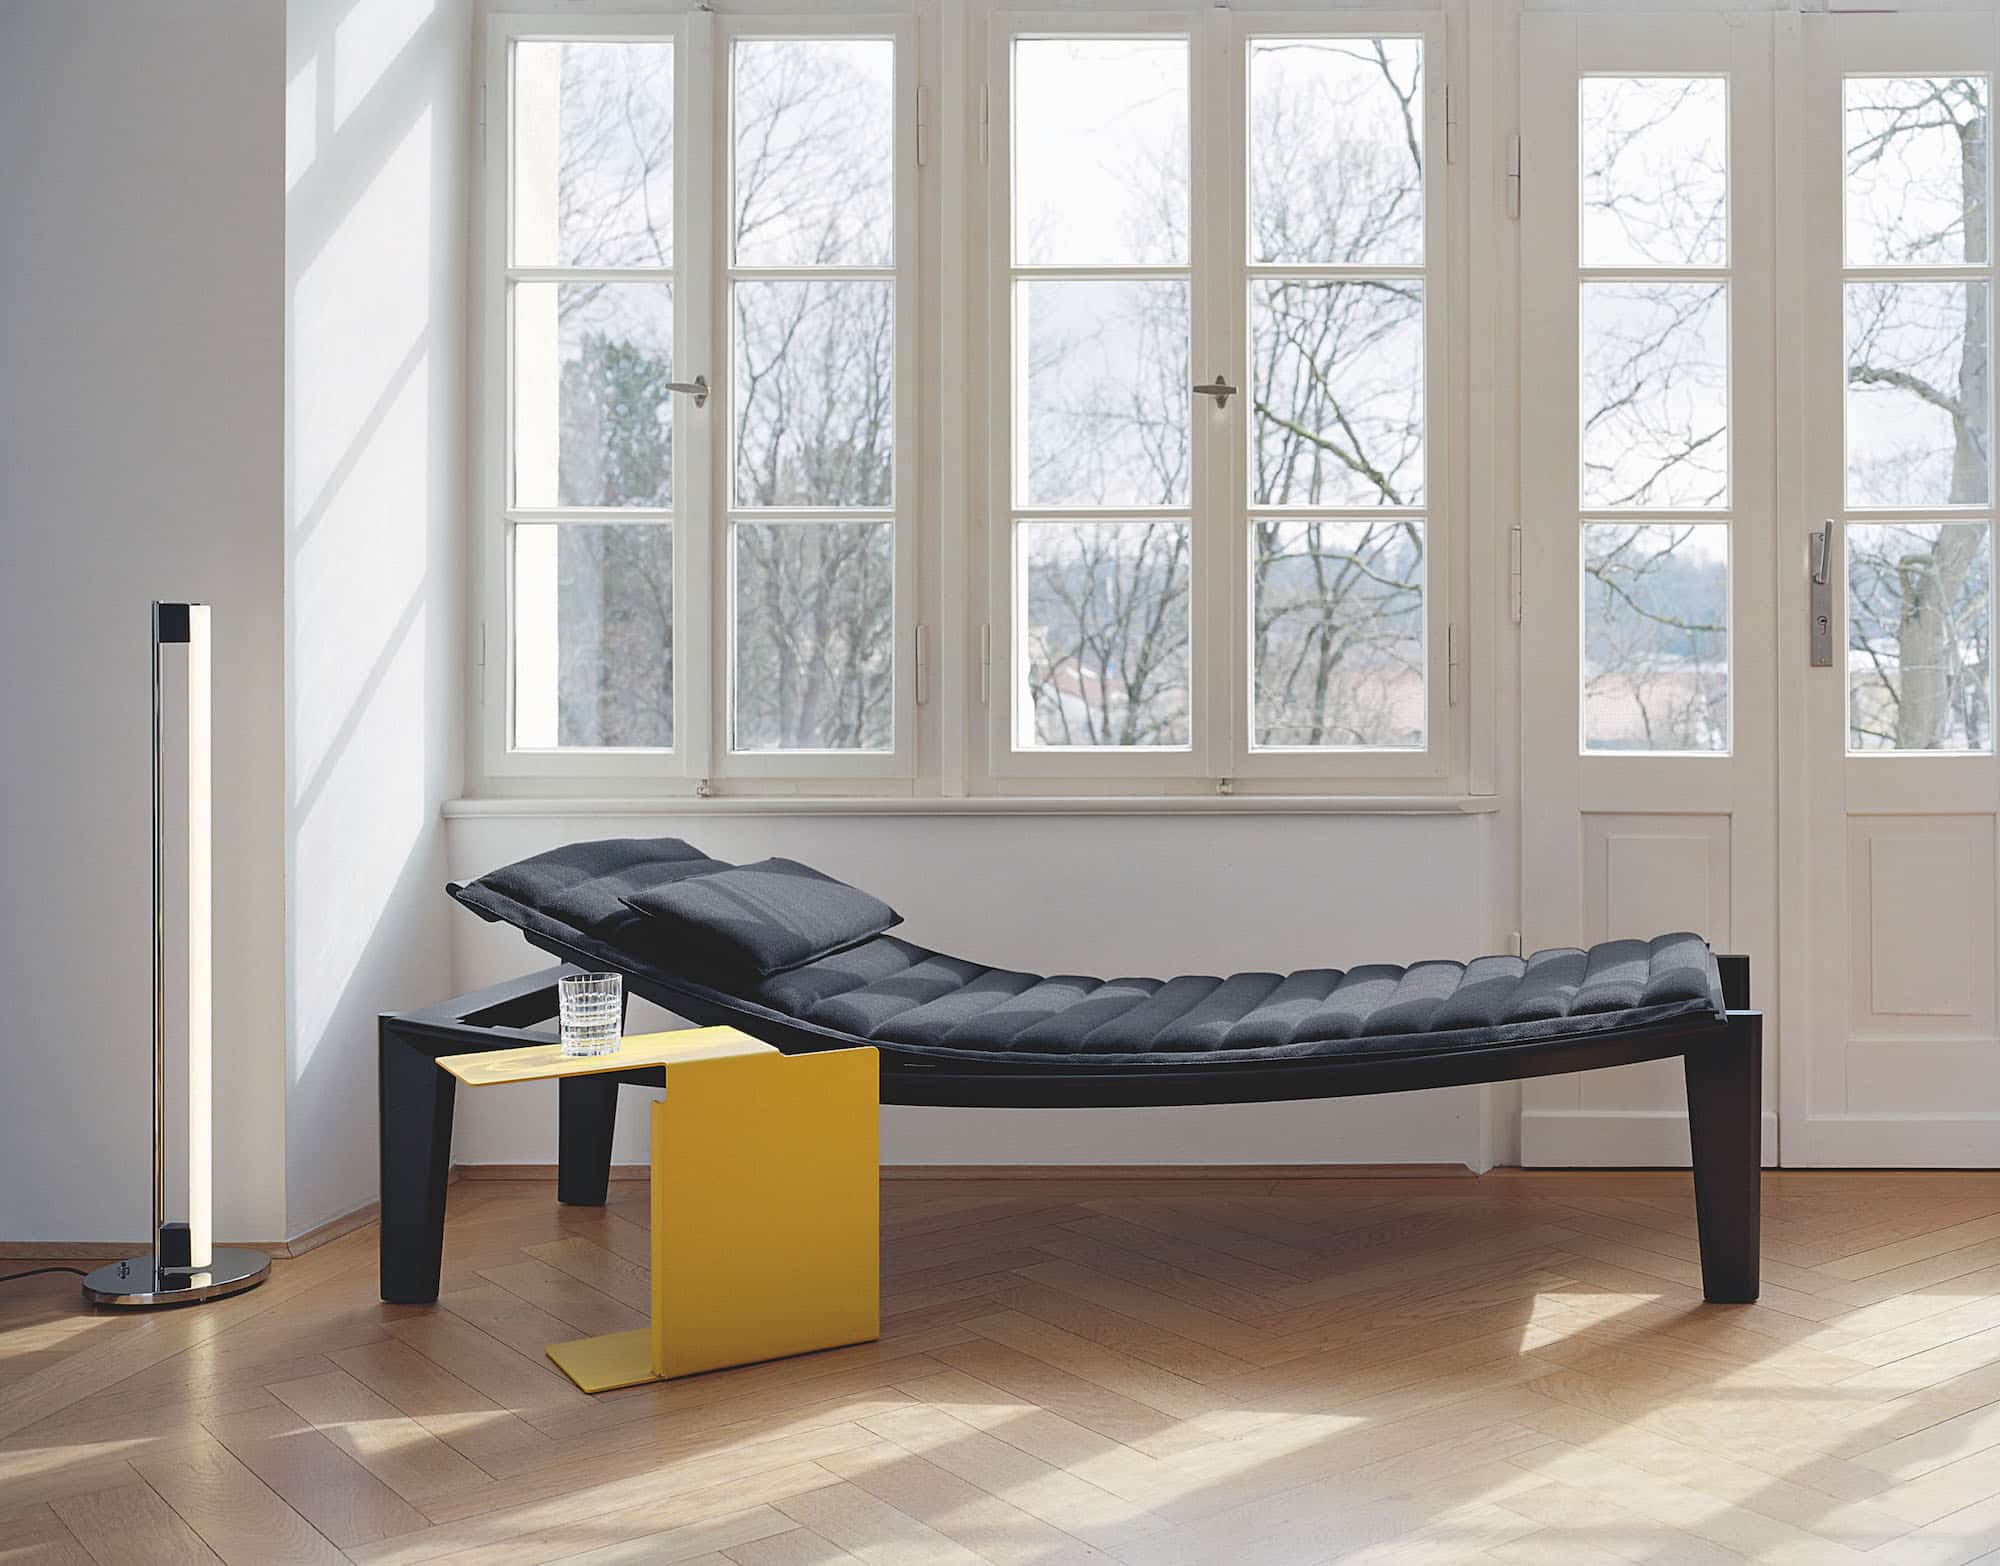 Konstantin Grcic's Ulisse daybed and Diana A side table accompanied by Eileen Gray's Tube light, 1927